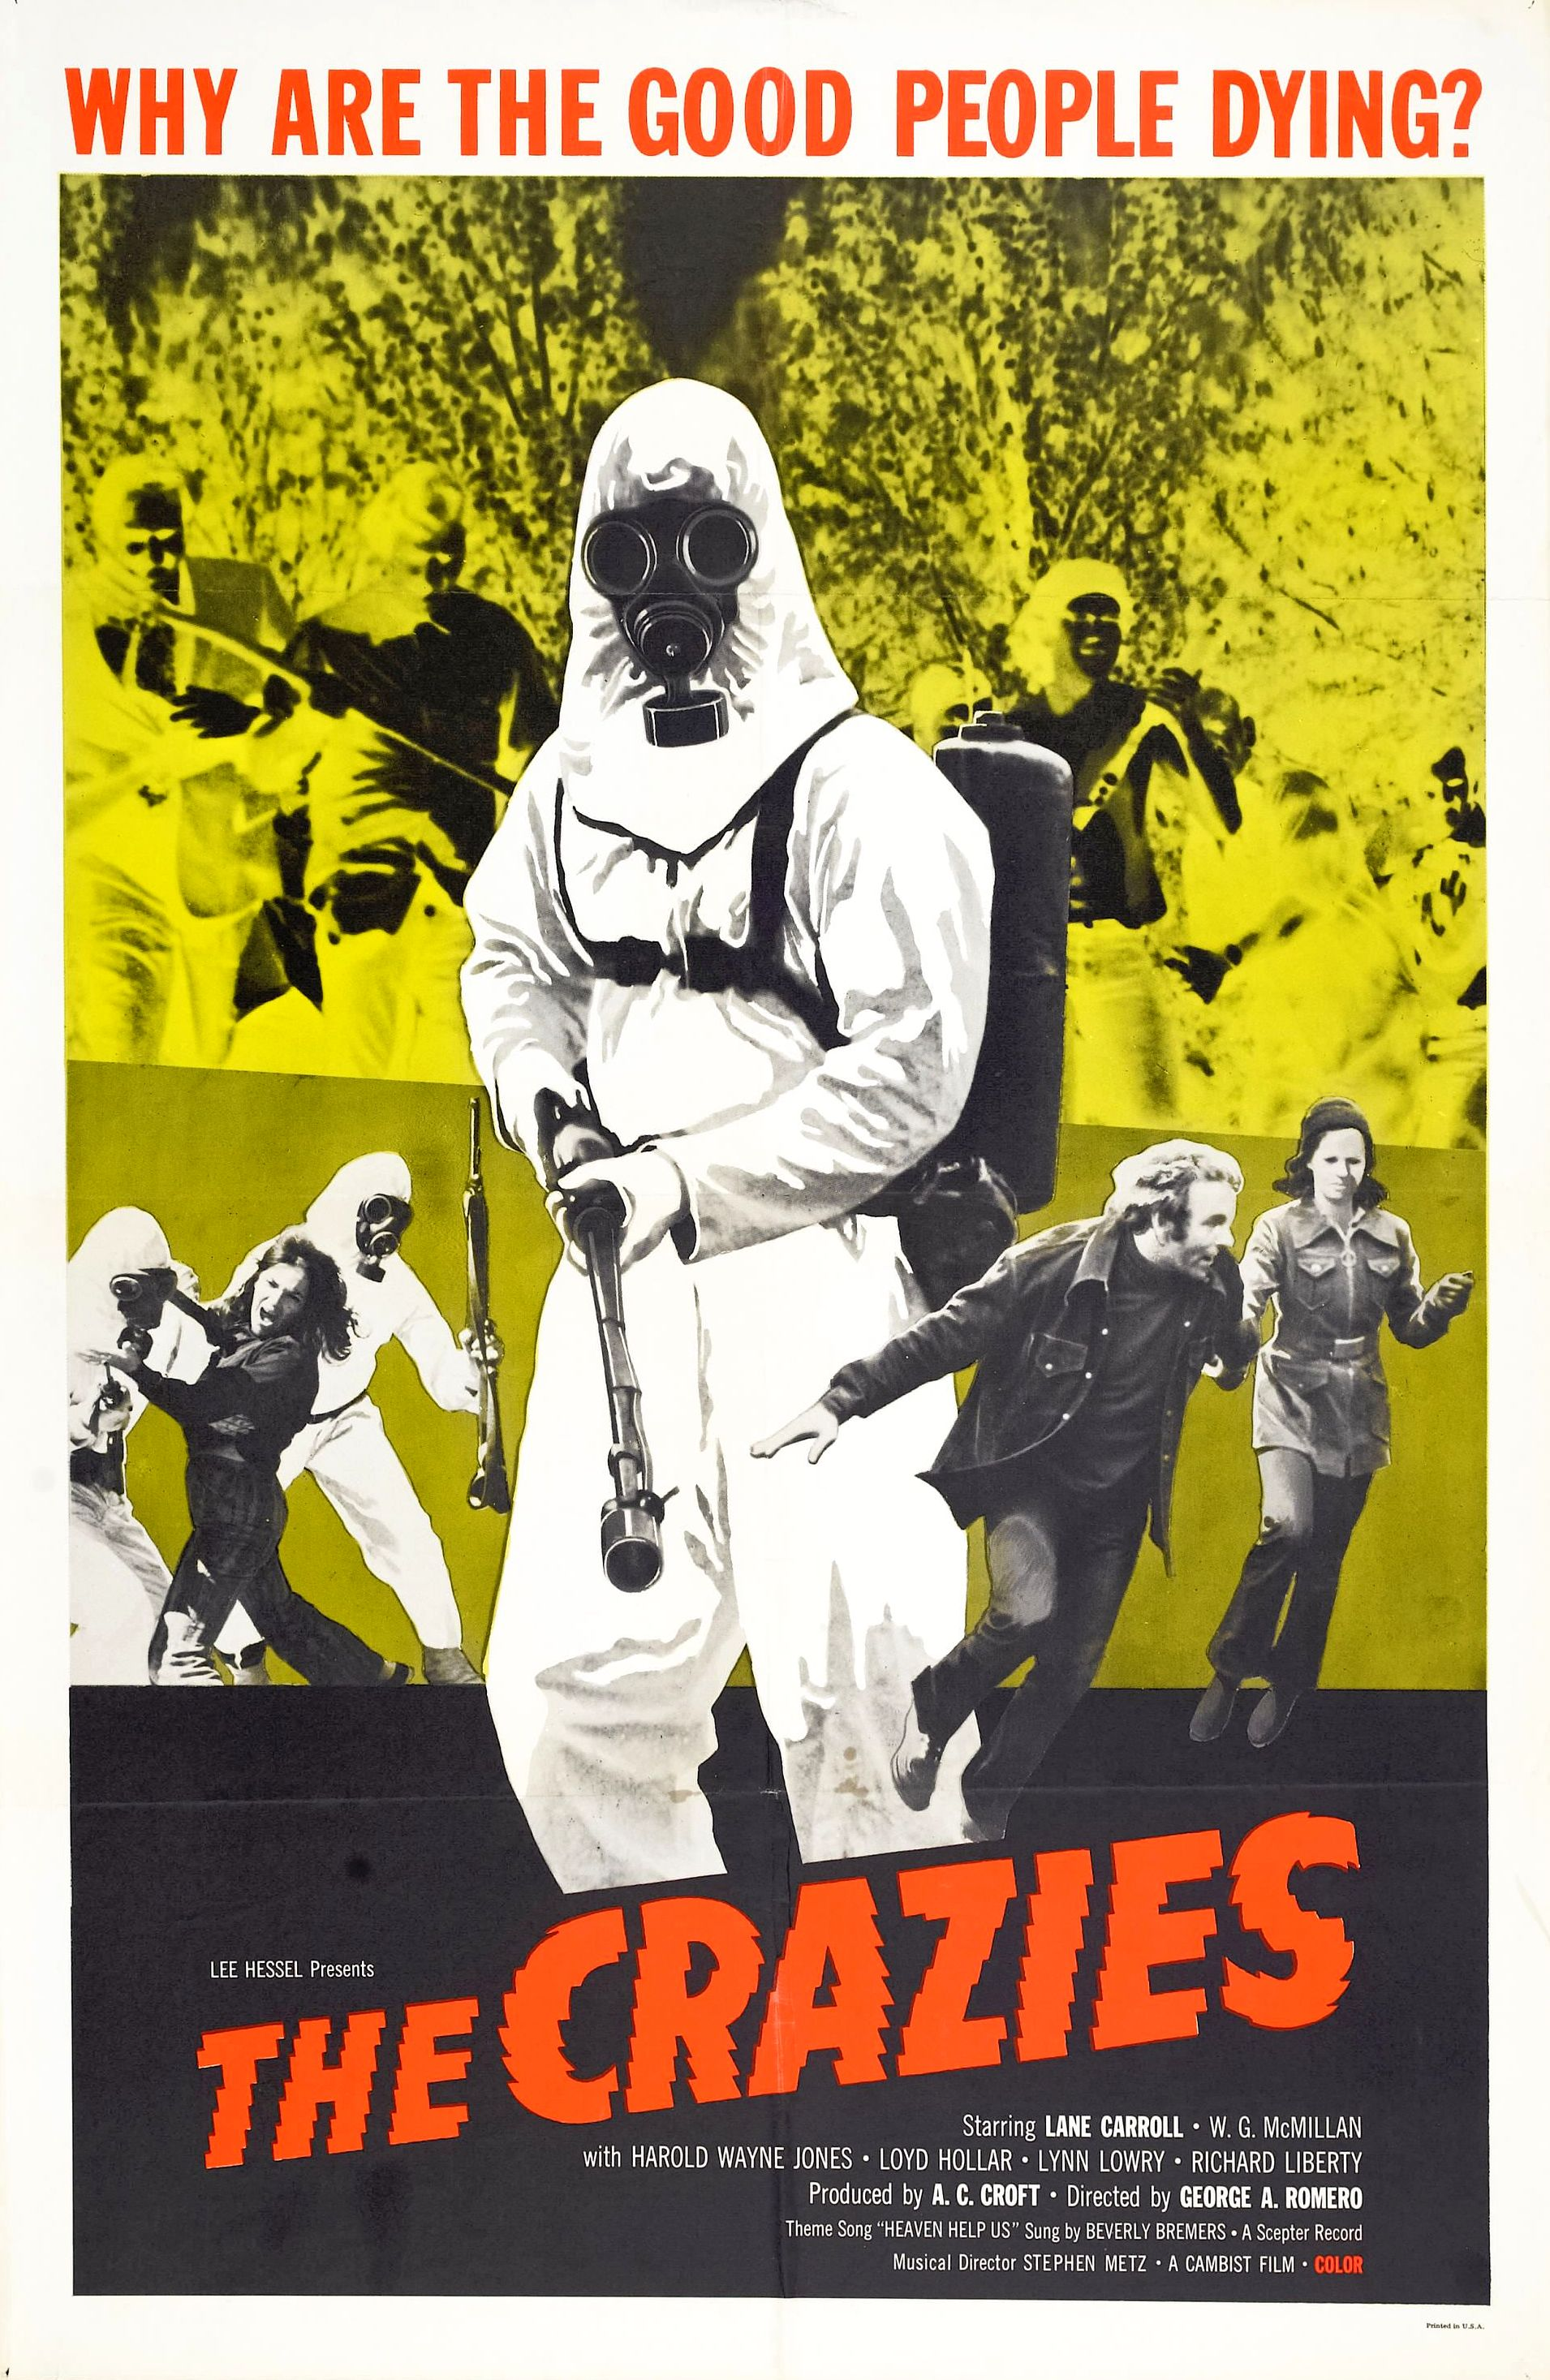 THE CRAZIES (1975)